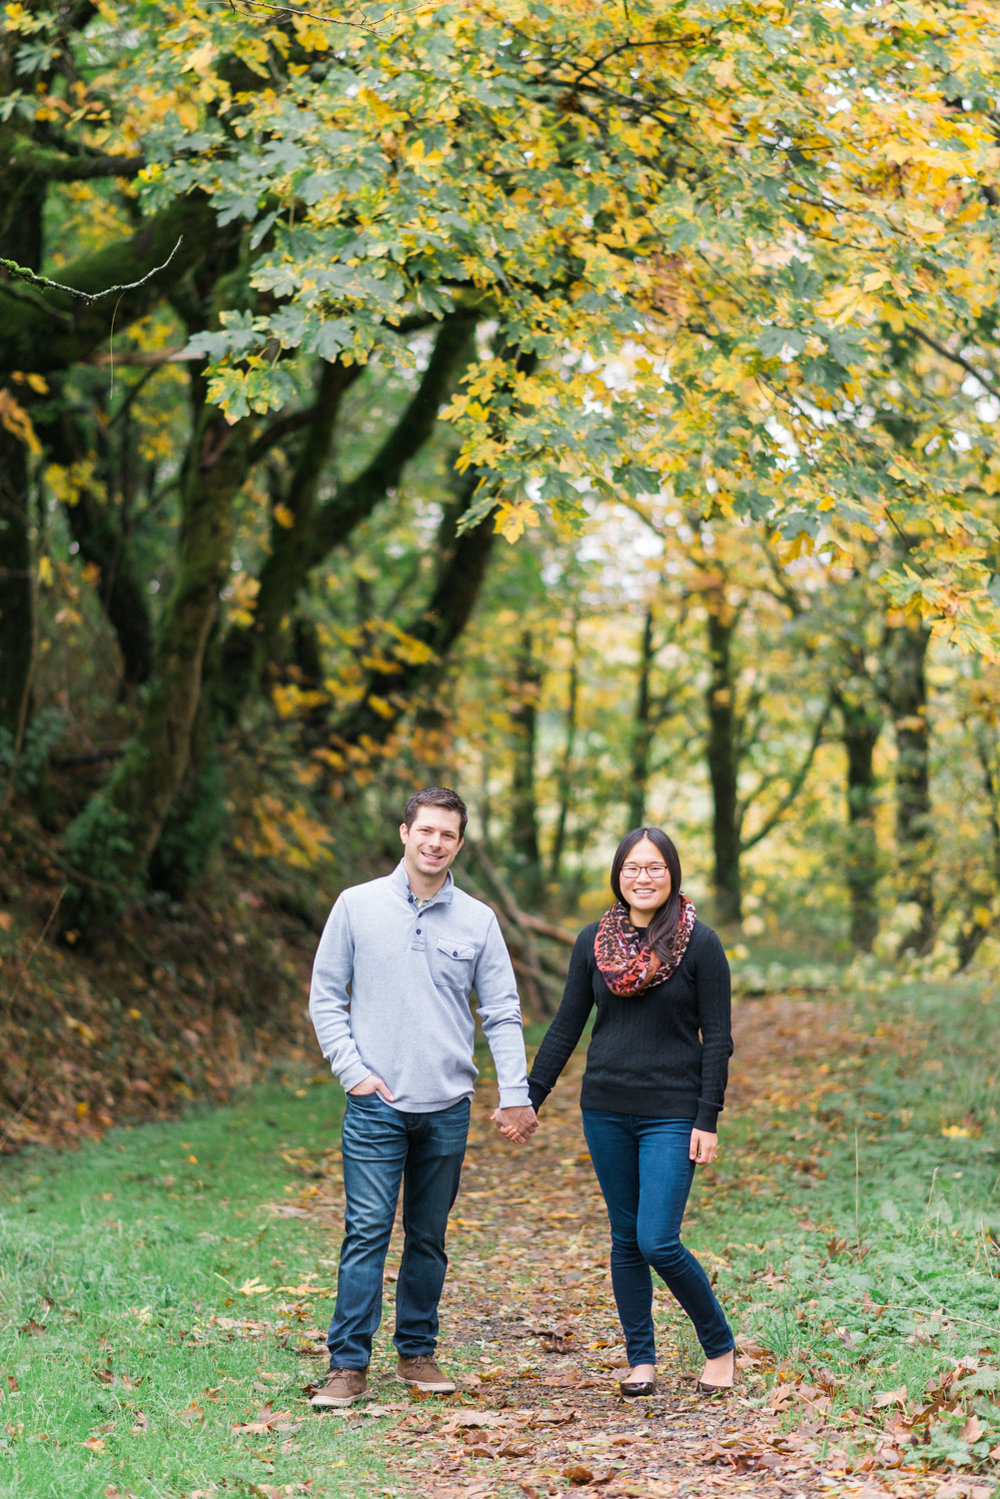 portland-engagement-columbia-river-gorge-latourell-waterfall-autumn-fall-crown-point-shelley-marie-photo-10.jpg